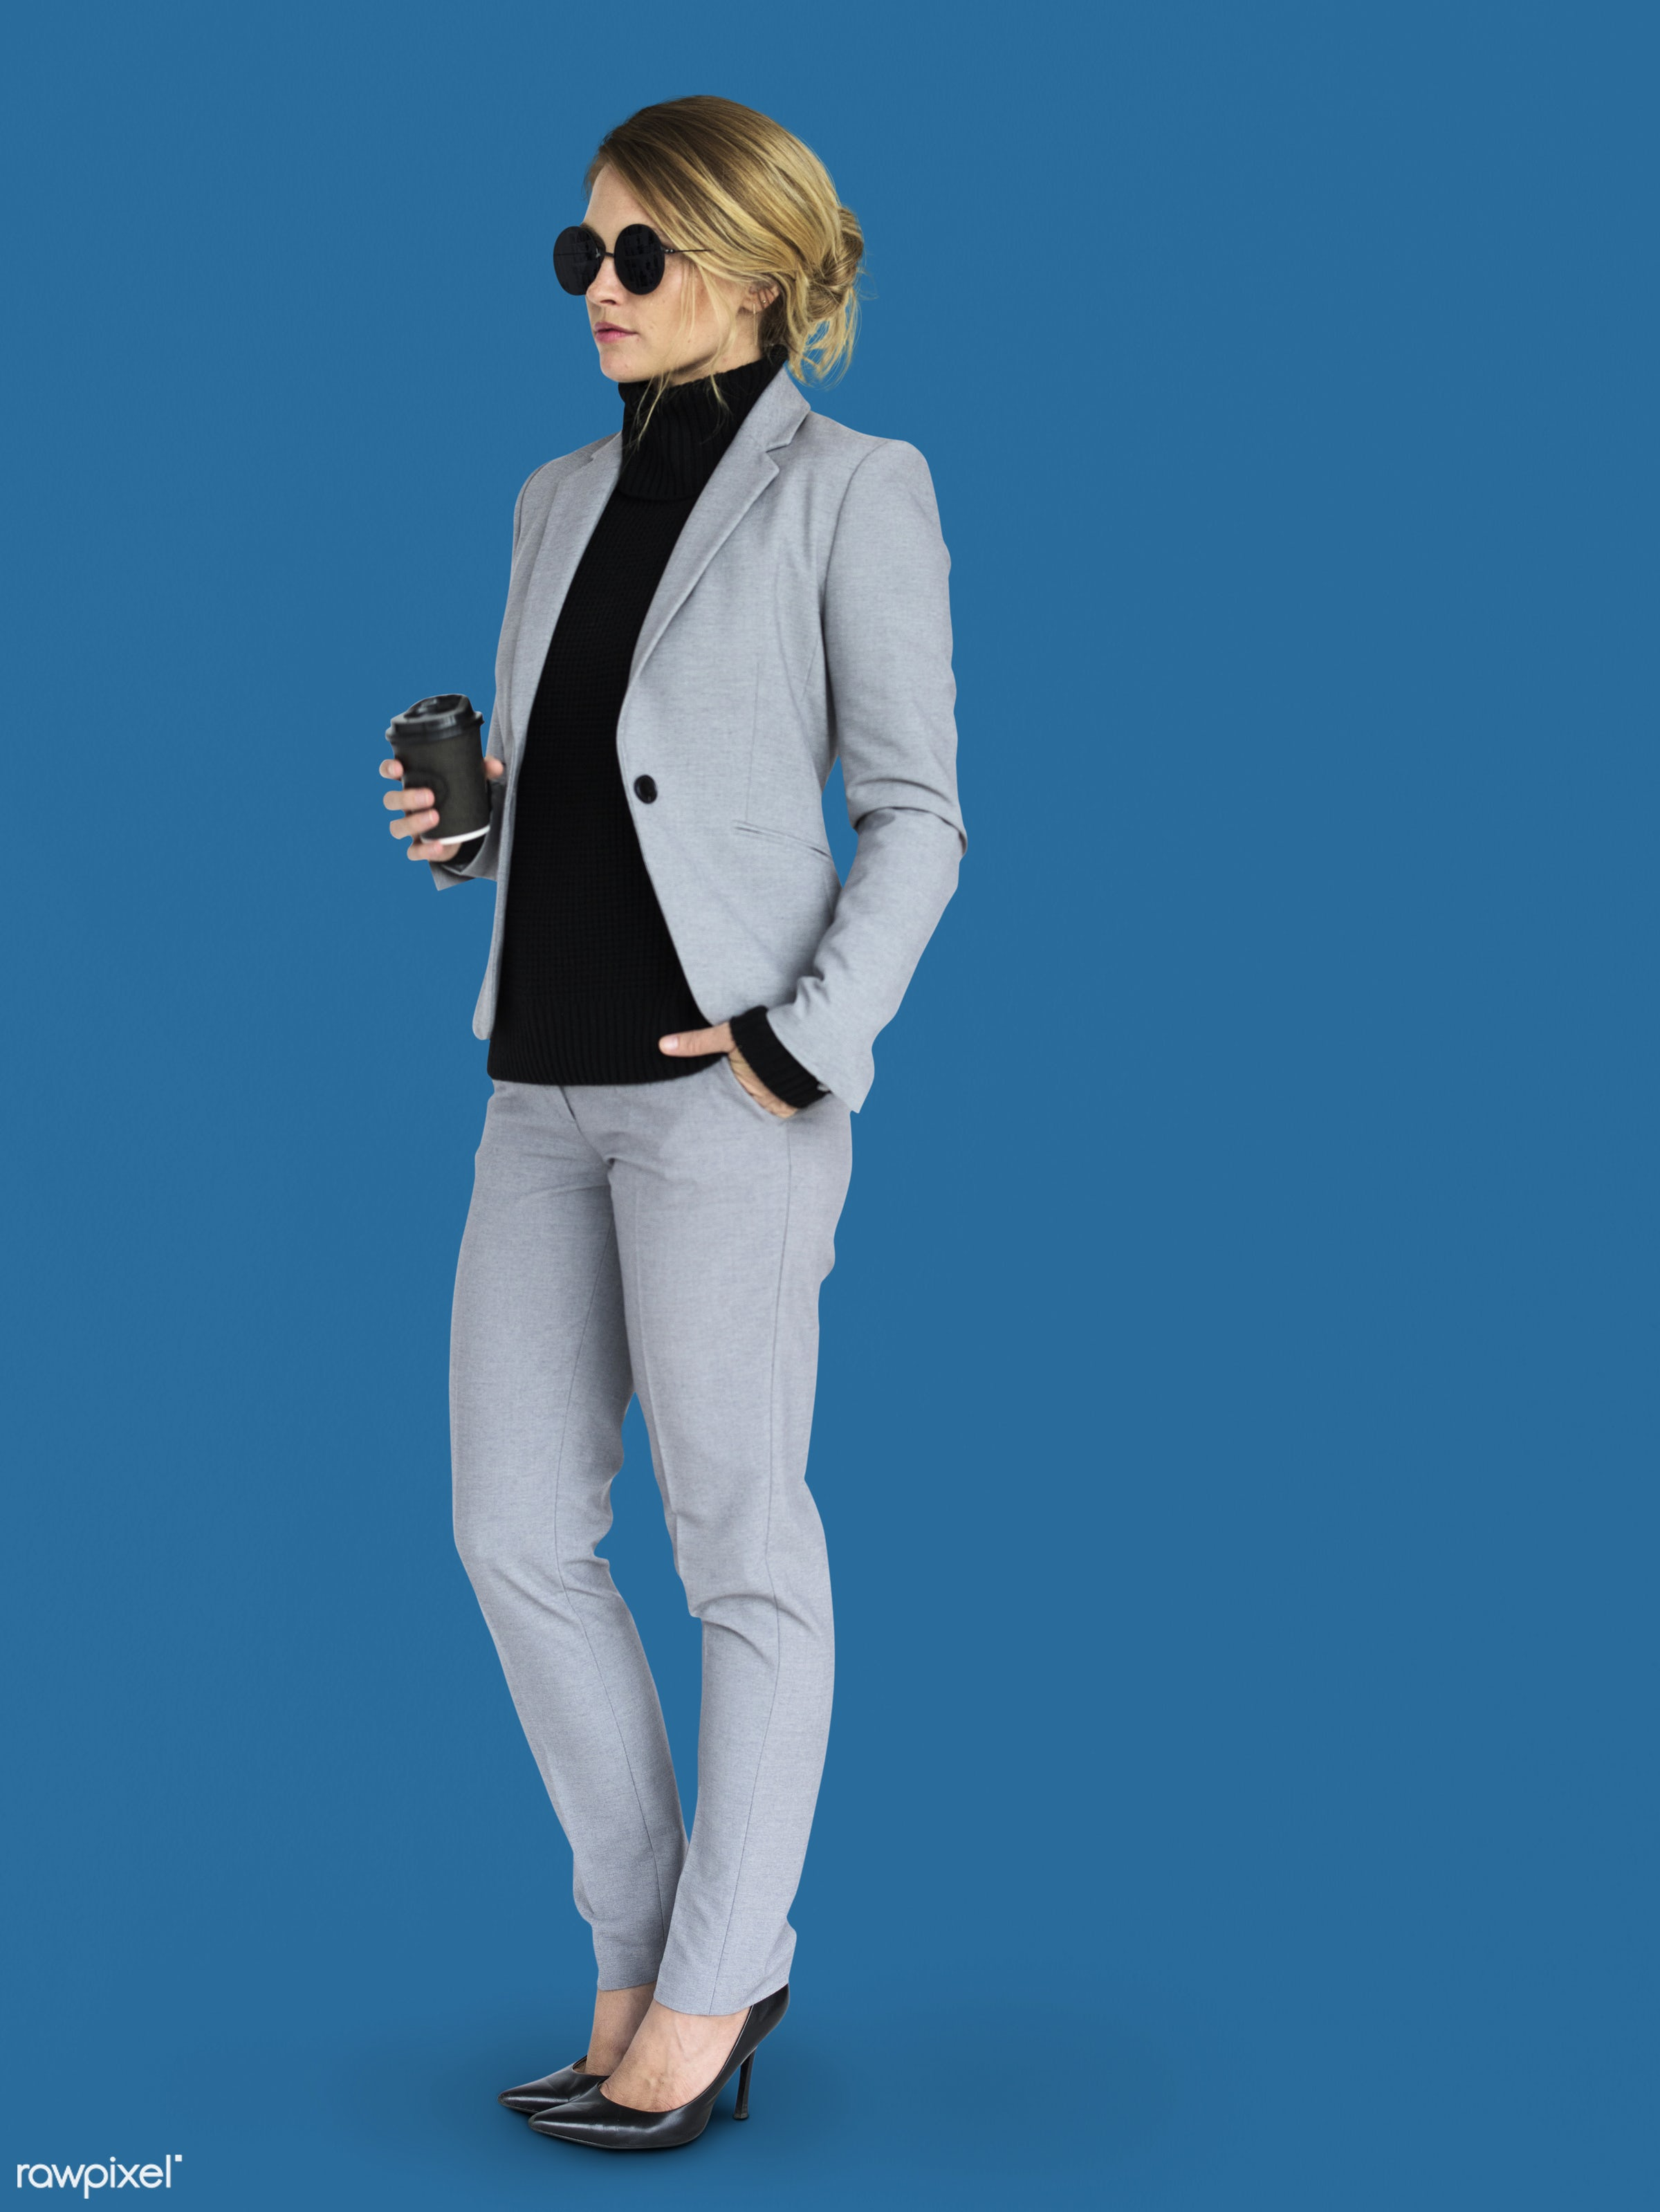 background, business attire, business wear, business woman, candid, caucasian, coffee, emotion, expression, female, formal,...